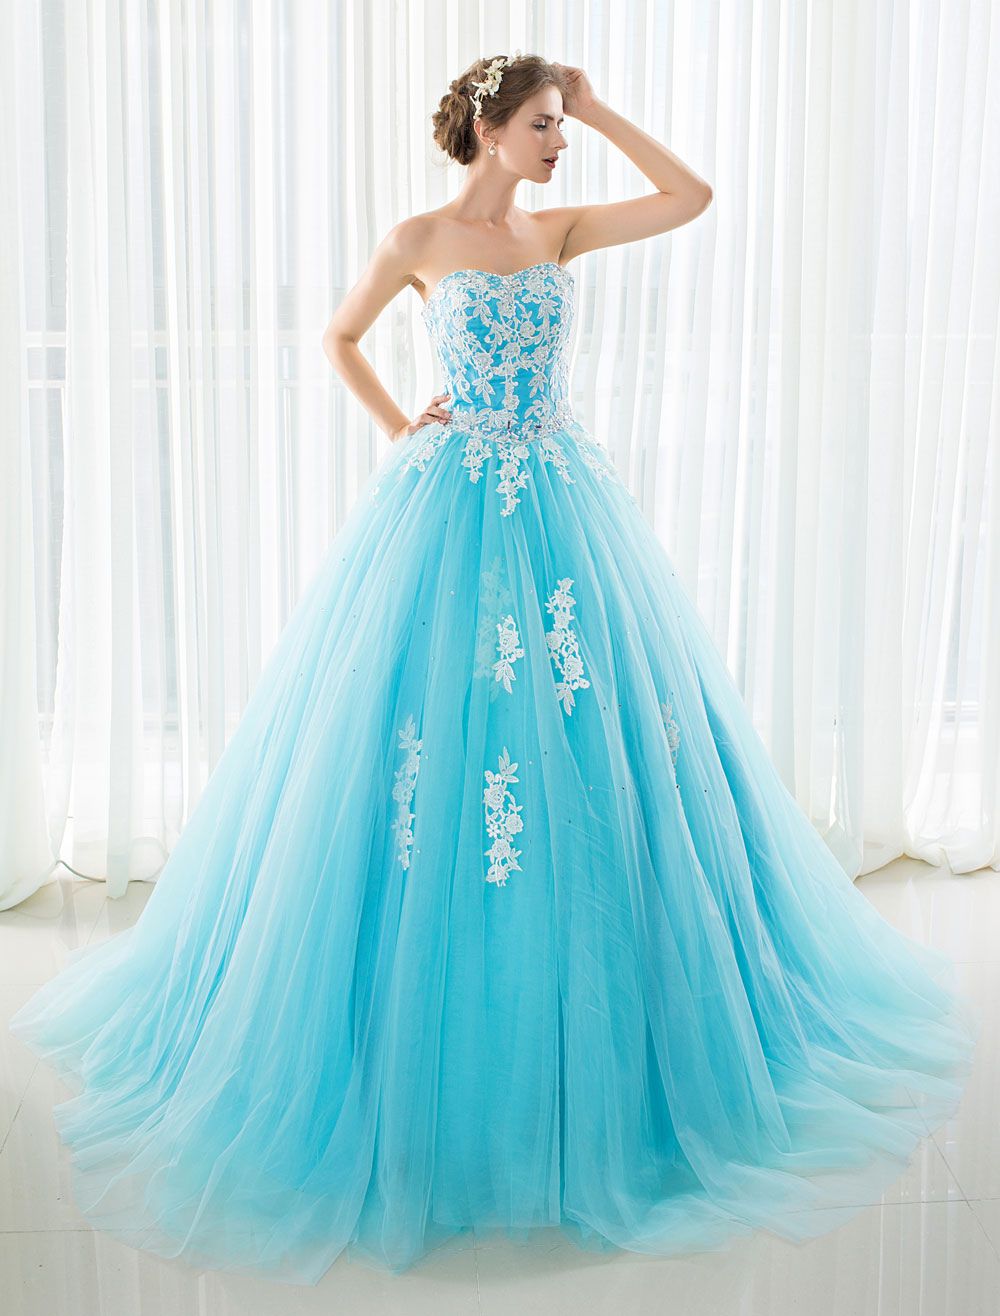 Buy Blue Wedding Dress Lace Applique Tulle Court Train Strapless Sweetheart Lace-up A-line Bridal Gown for $149.39 in Milanoo store